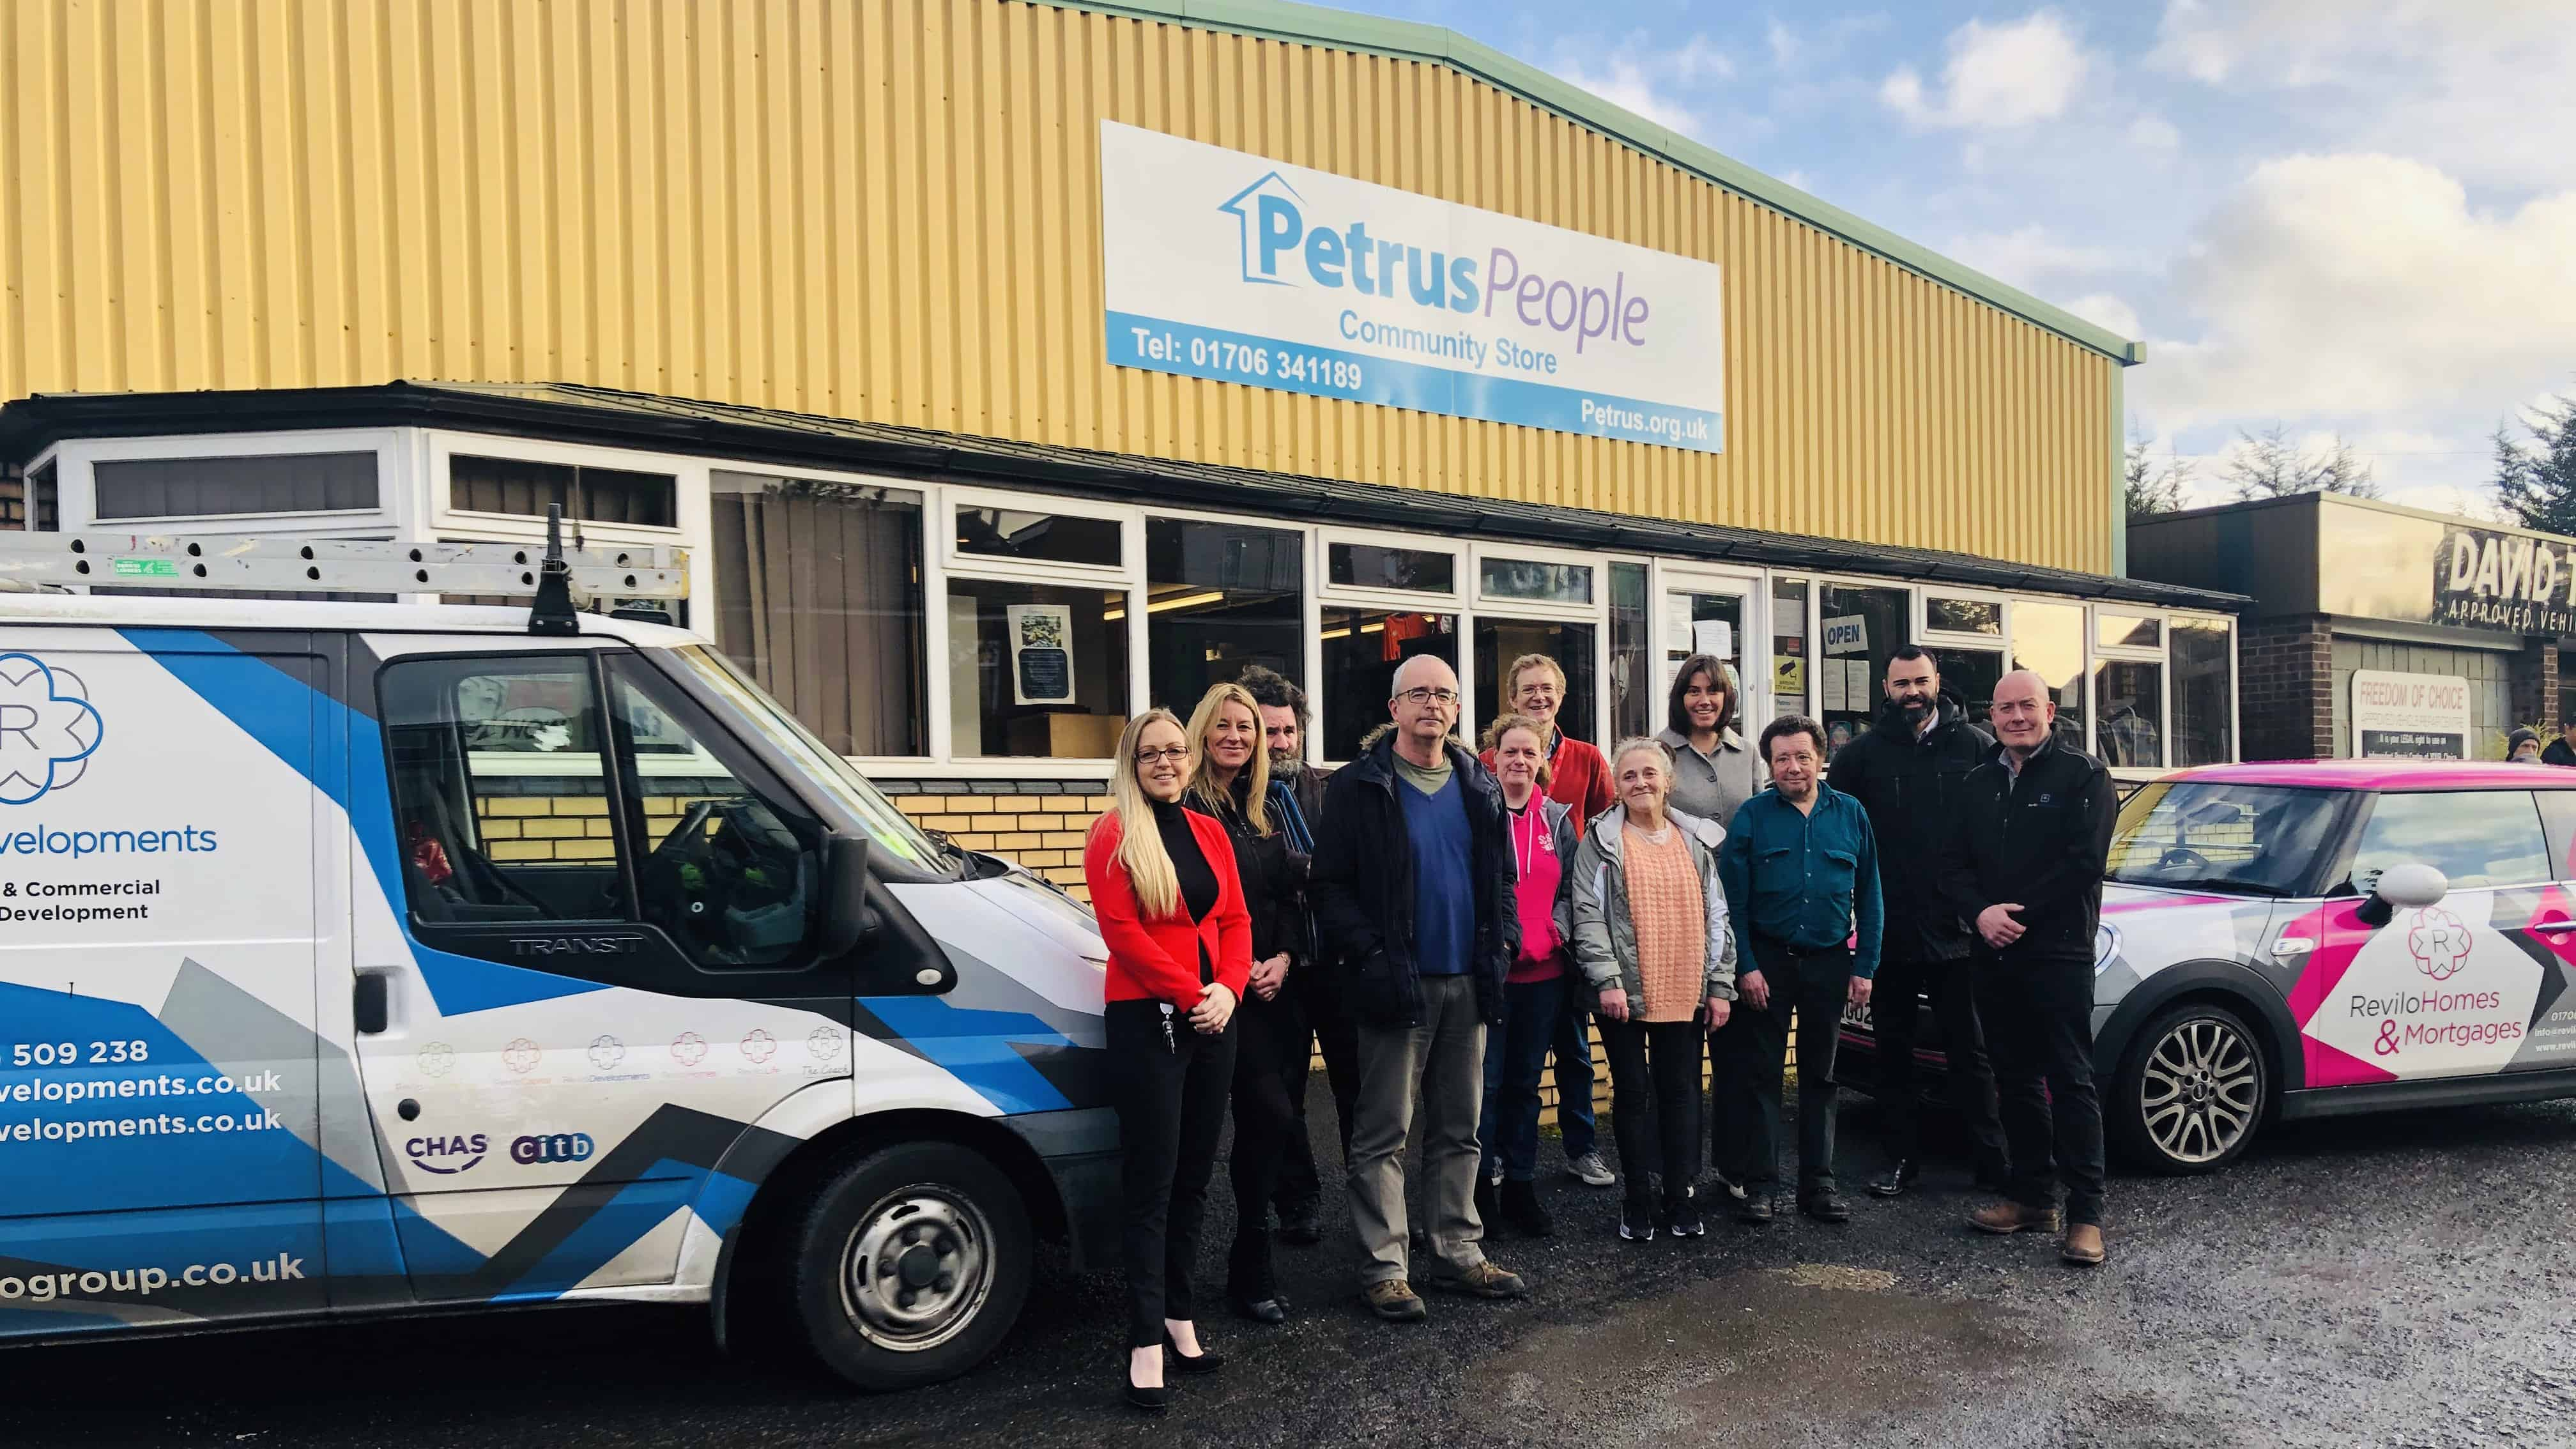 Revilo at the Petrus Store to deliver items